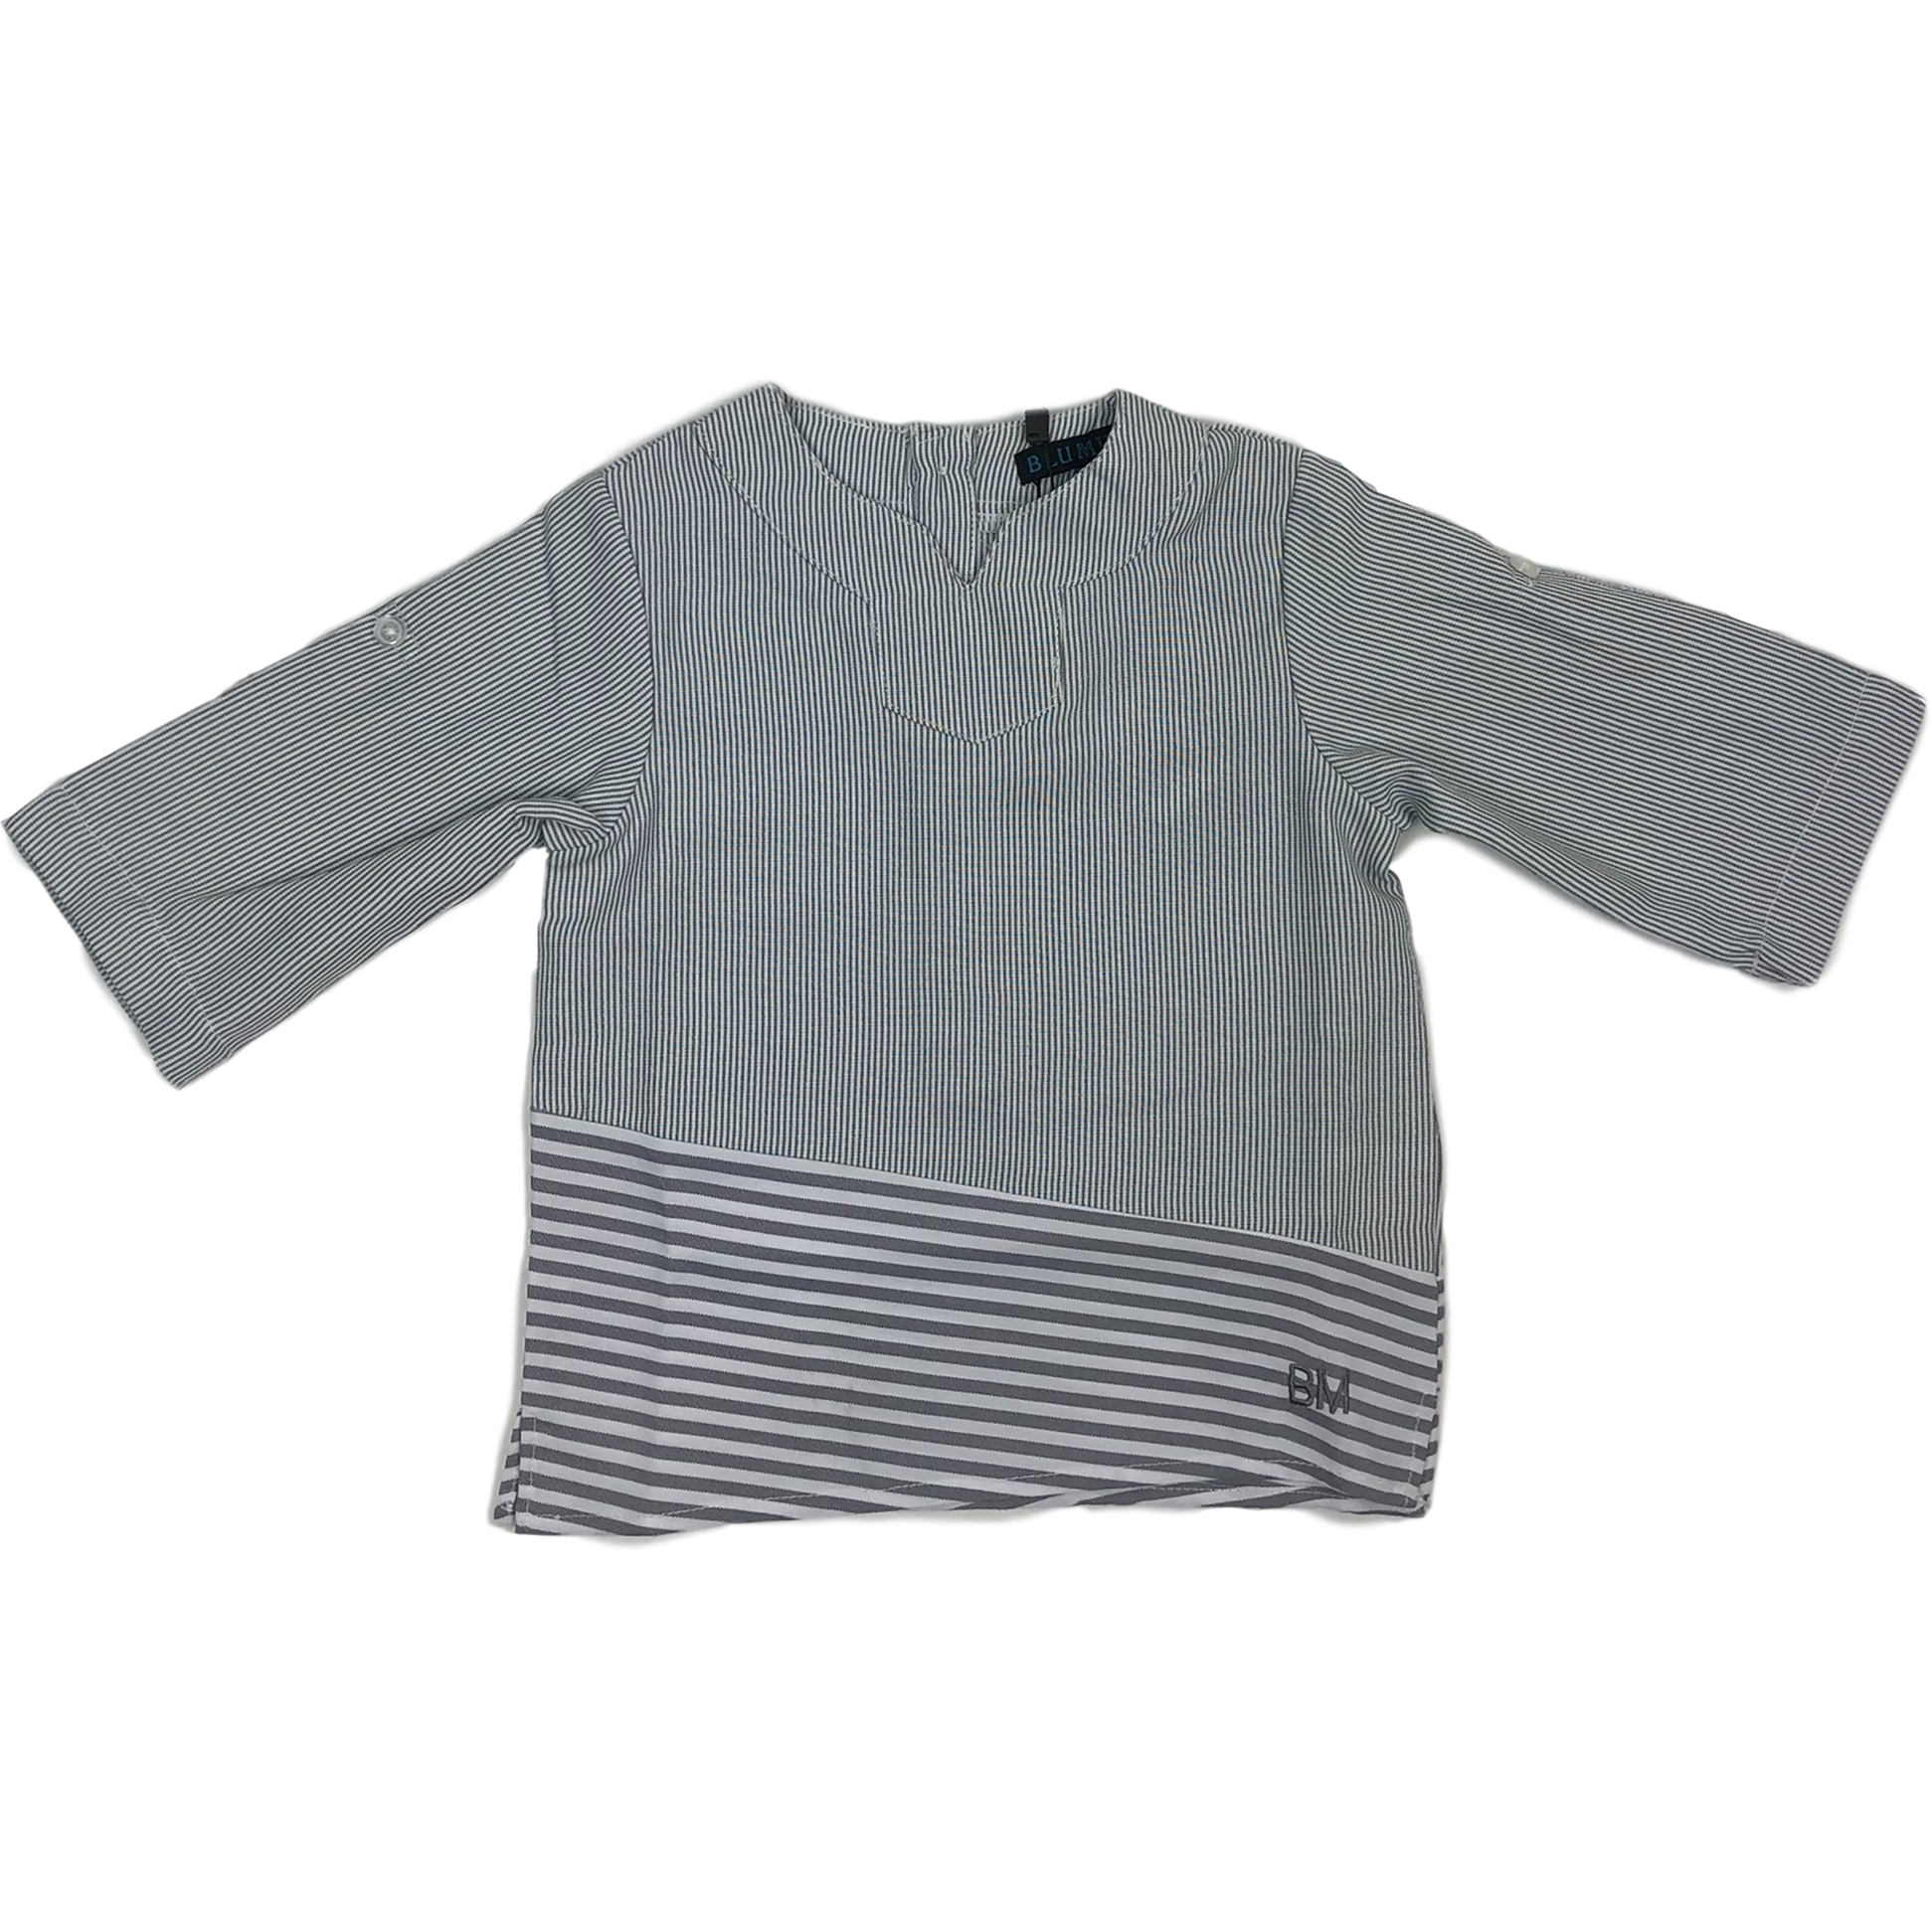 Blumint Grey/White Striped Shirt